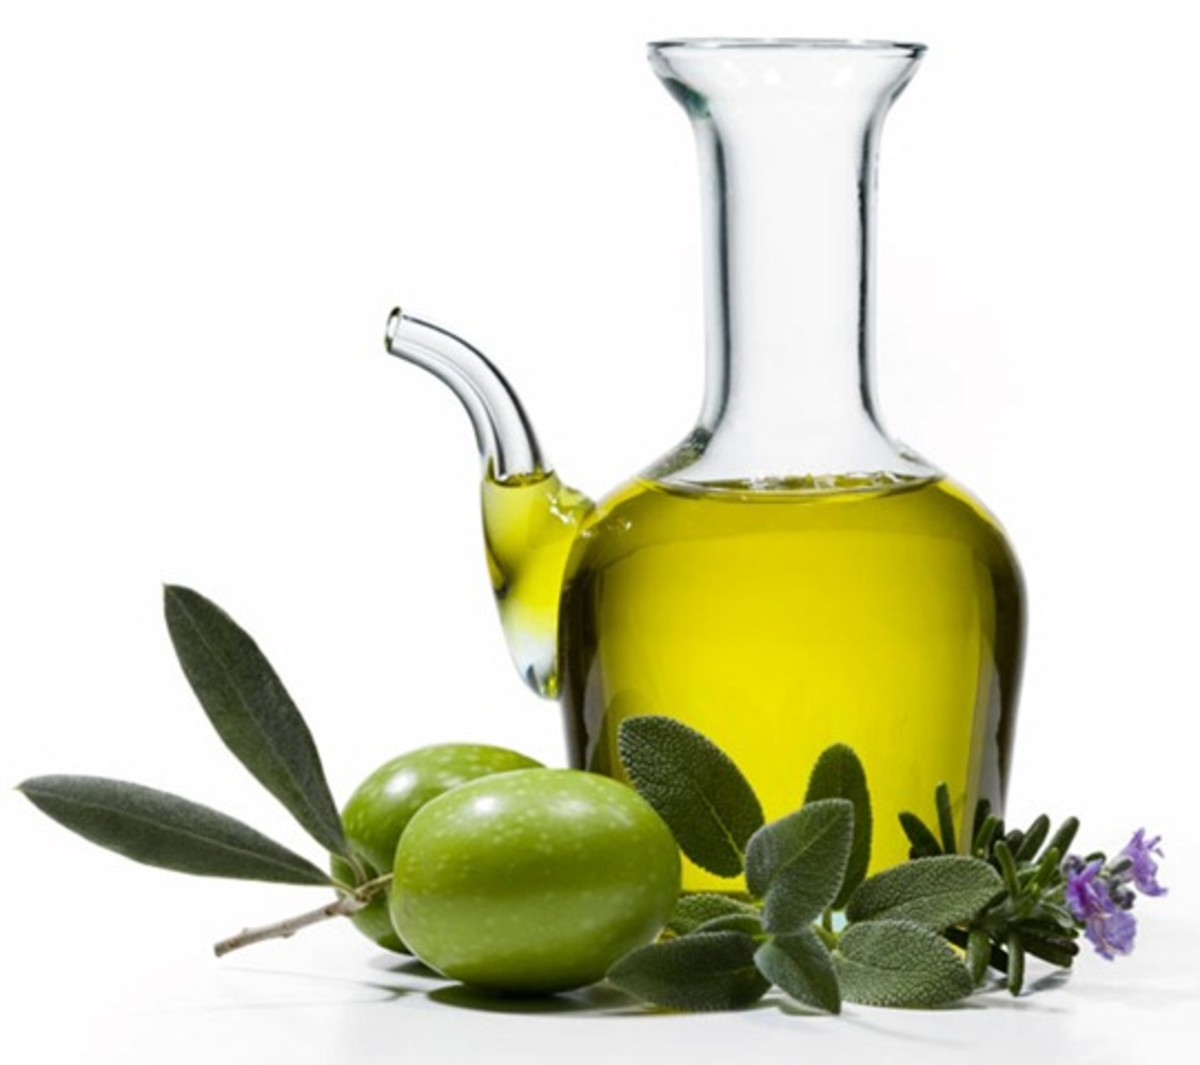 Olive and other common oils can moisturize your skin and may help reduce scarring.